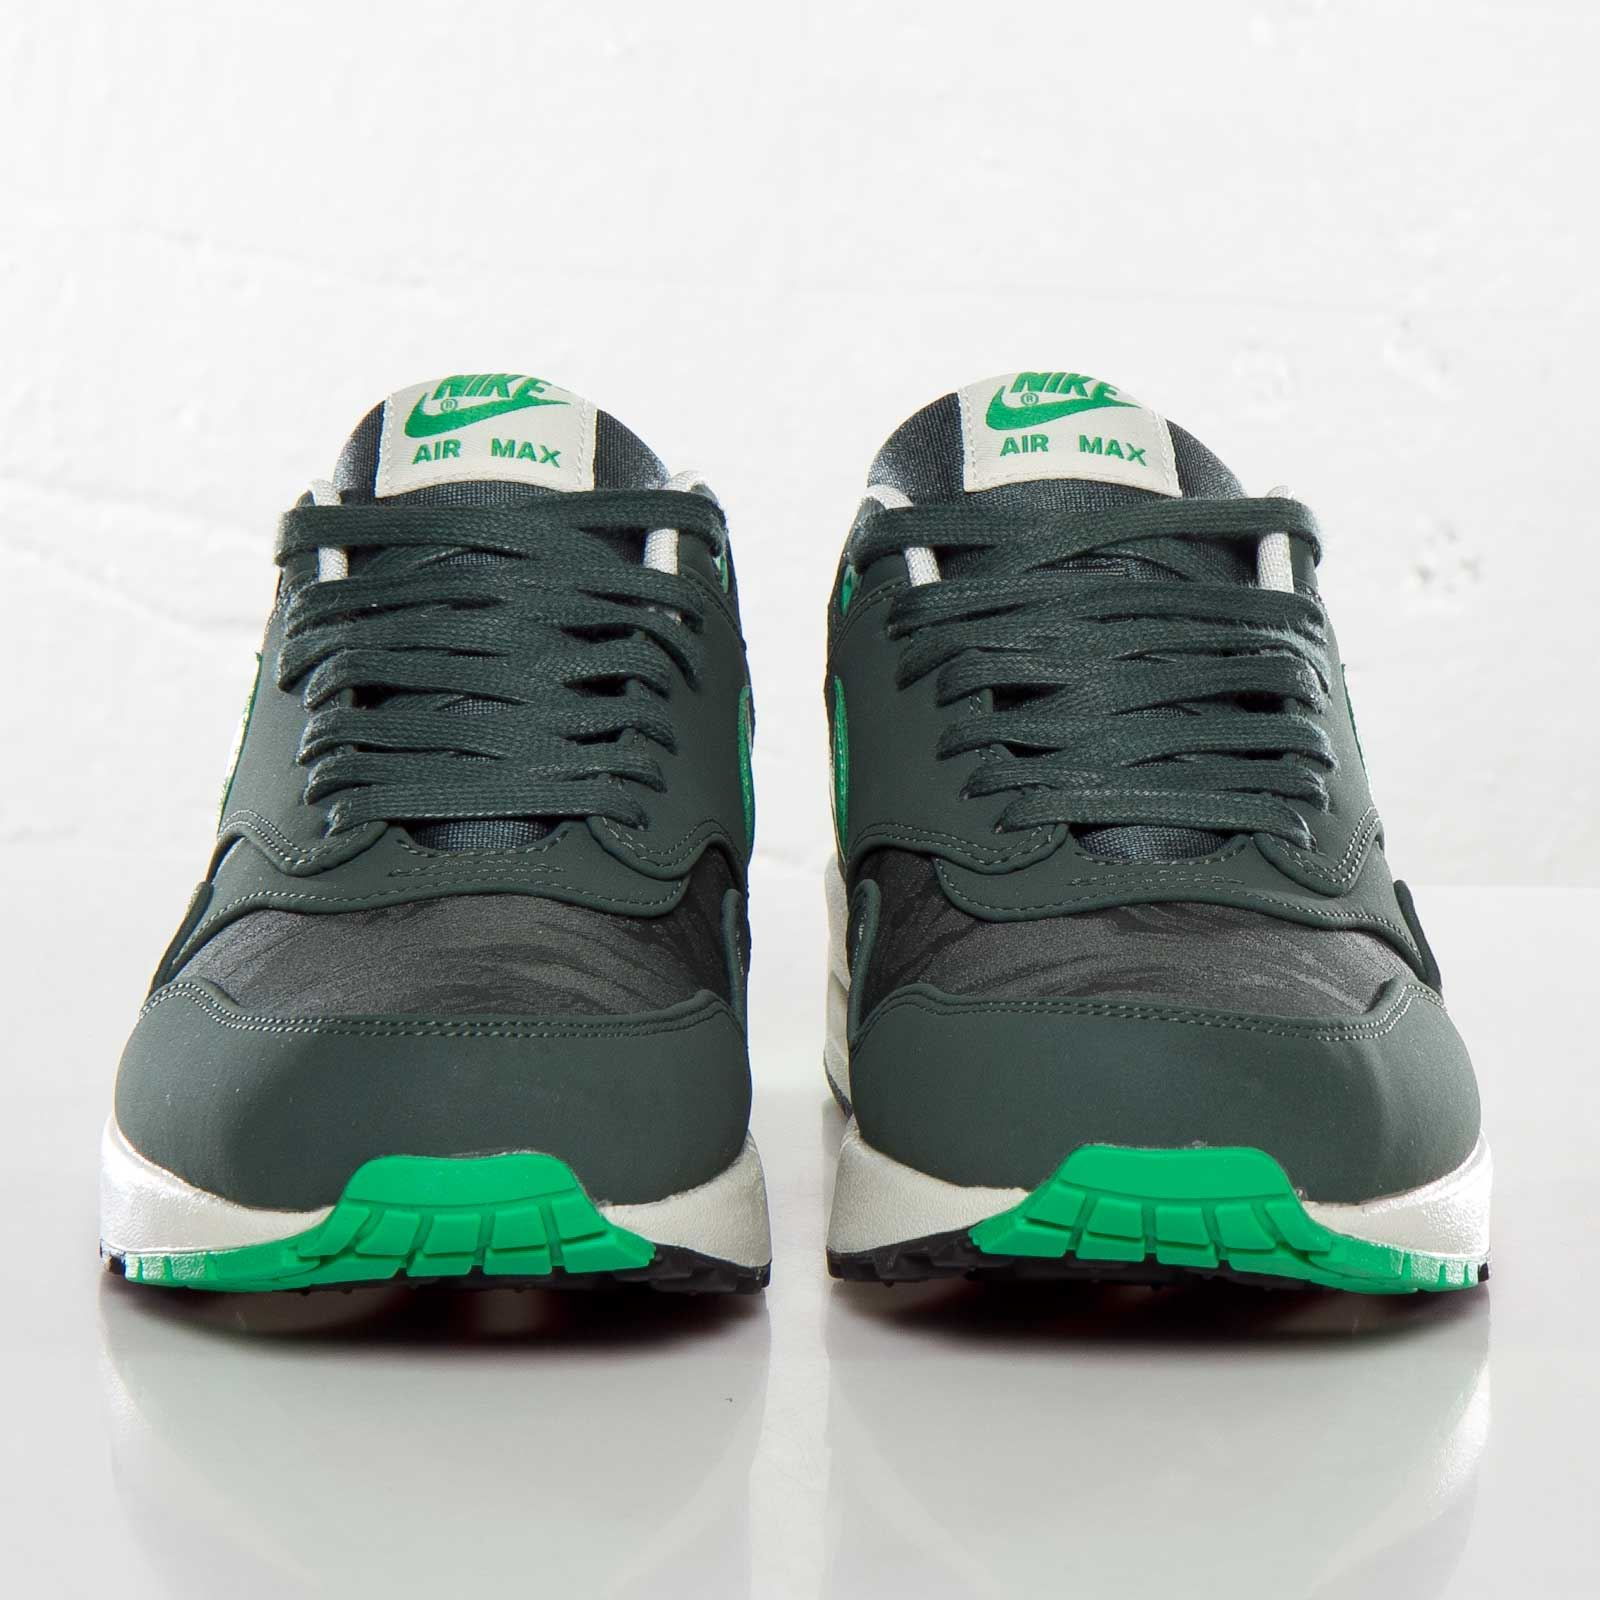 Details about Nike Mens Air Max 1 Vintage Green Trainers 512033 330